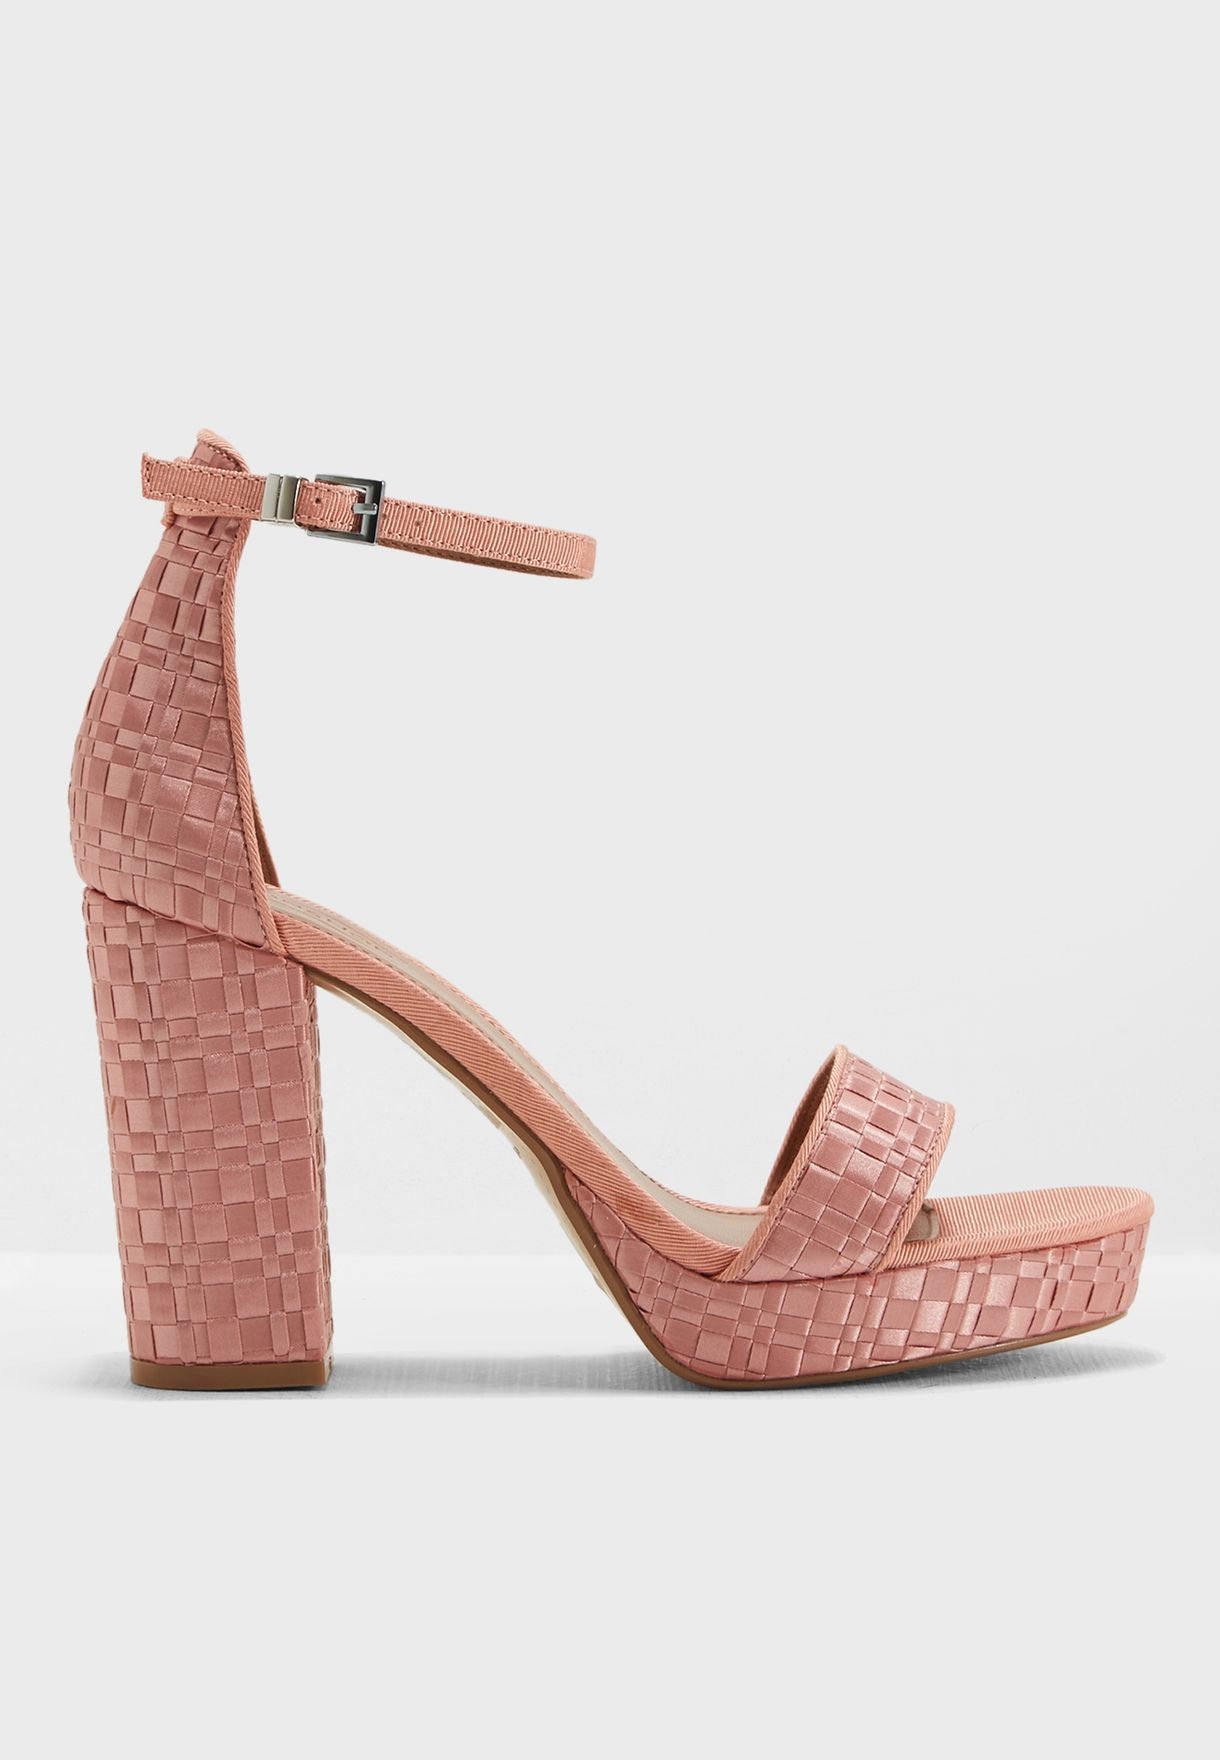 6bee439c1b92 Shop Topshop pink Sloane Woven Platform Sandal 32S09NPNK for Women in Saudi  - TO856SH85BJI